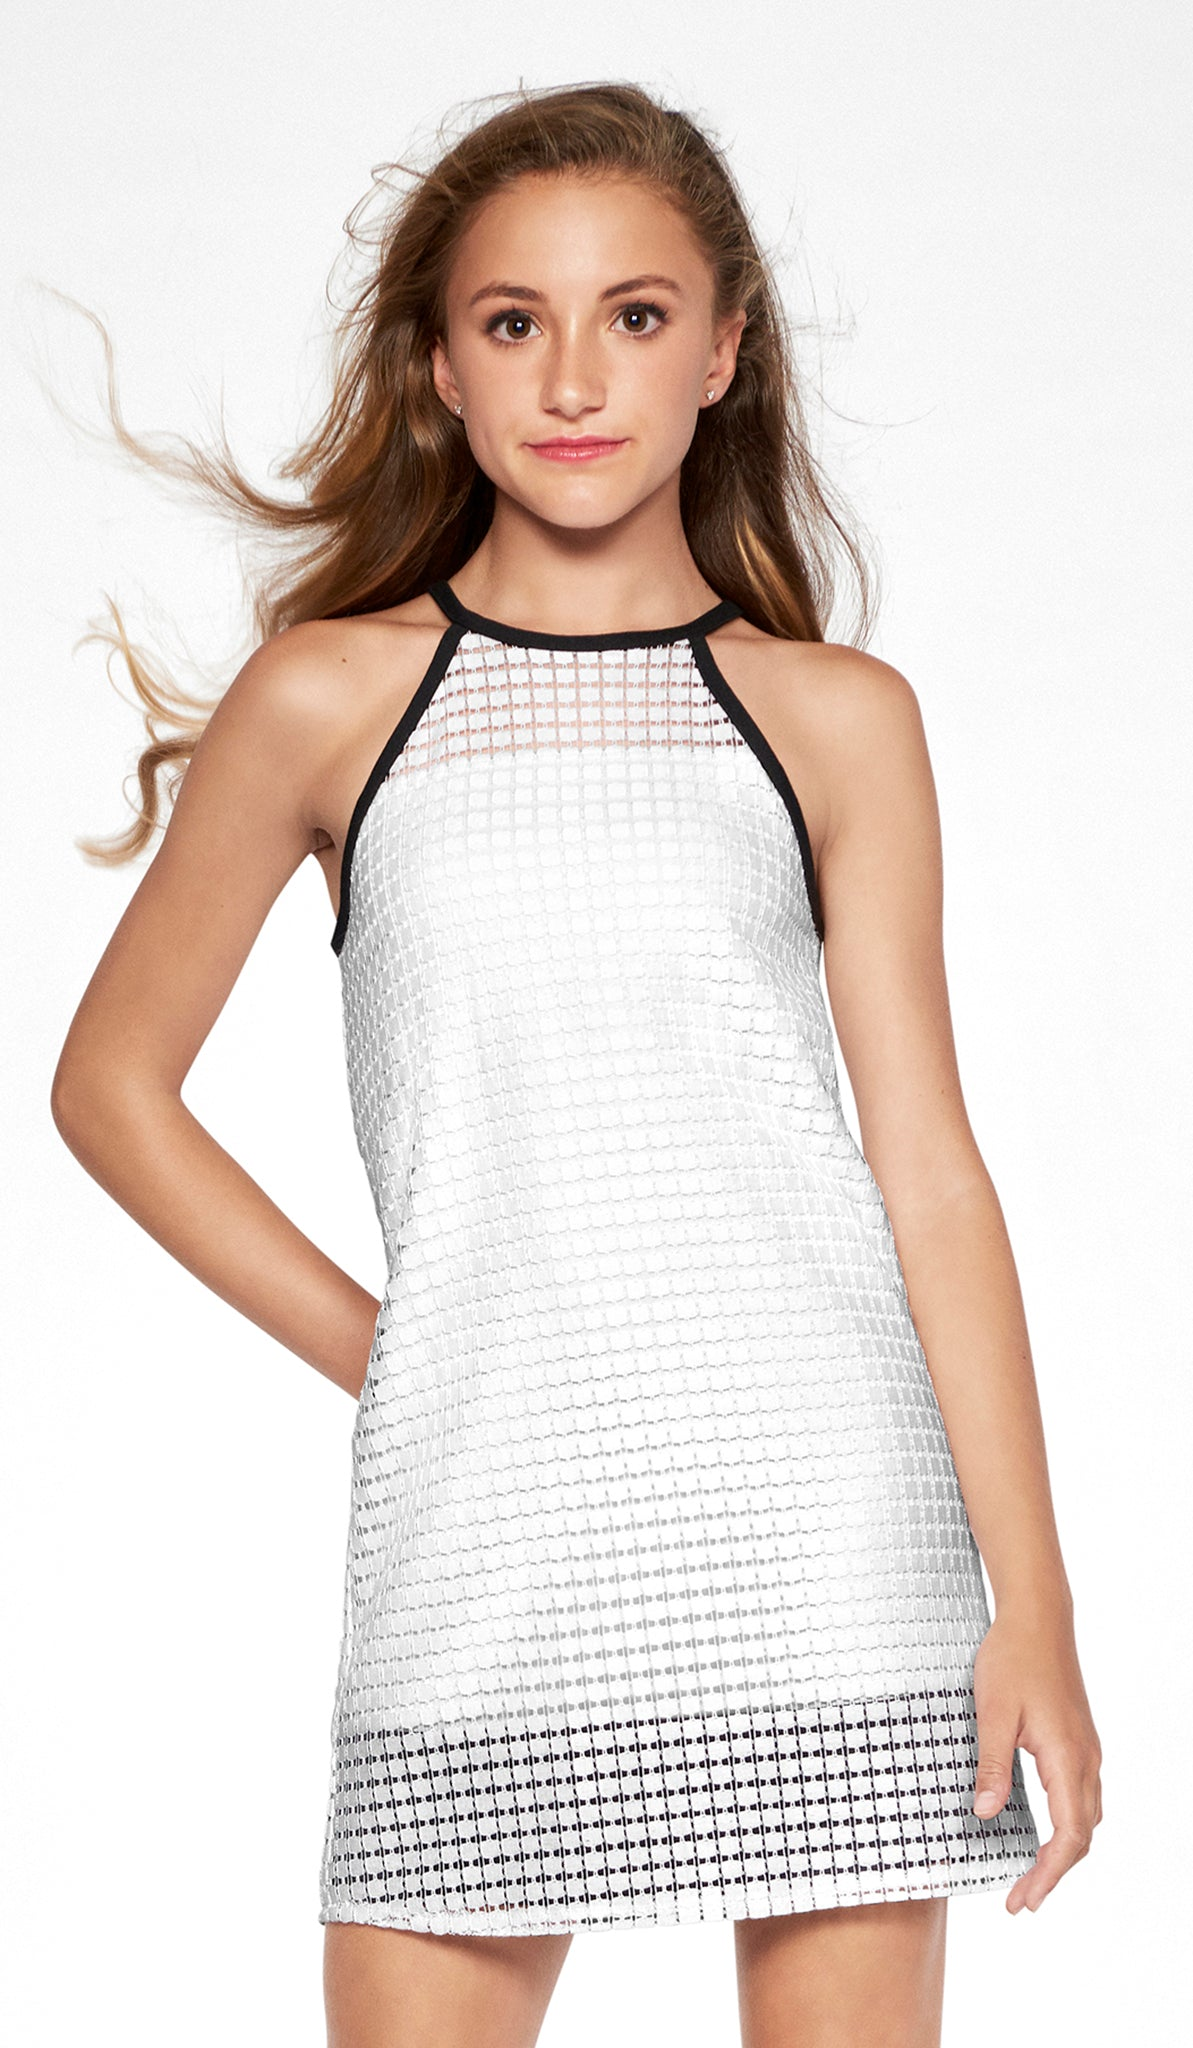 THE MARIE DRESS - Sallymiller.com - [variant title] - | Event & Party Dresses for Tween Girls & Juniors | Weddings Dresses, Bat Mitzvah Dresses, Sweet Sixteen Dresses, Graduation Dresses, Birthday Party Dresses, Bar Mitzvah Dresses, Cotillion Dresses